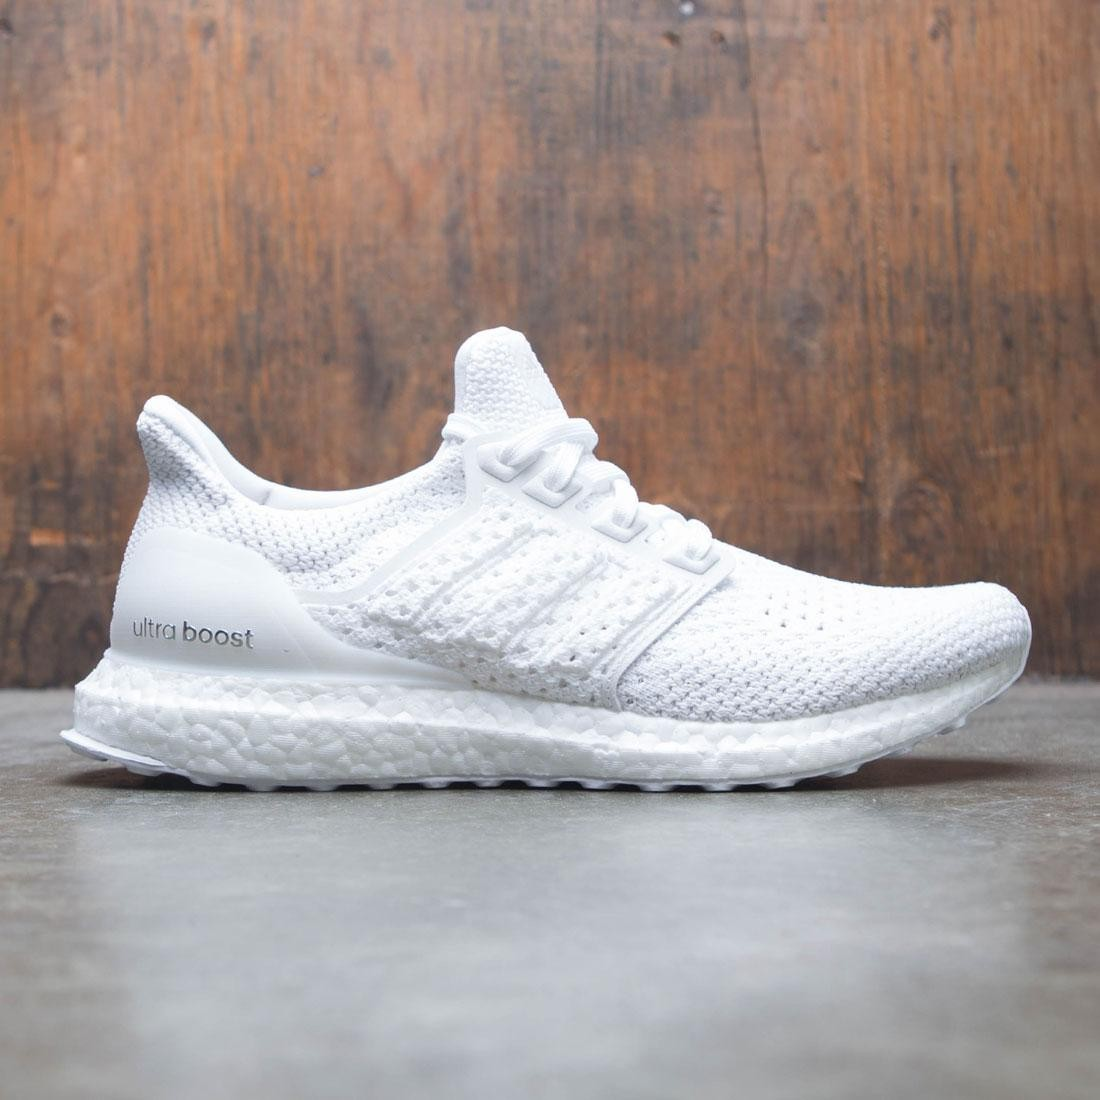 huge selection of 7120f bdabf Adidas Men UltraBOOST Clima (white / footwear white / clear brown)